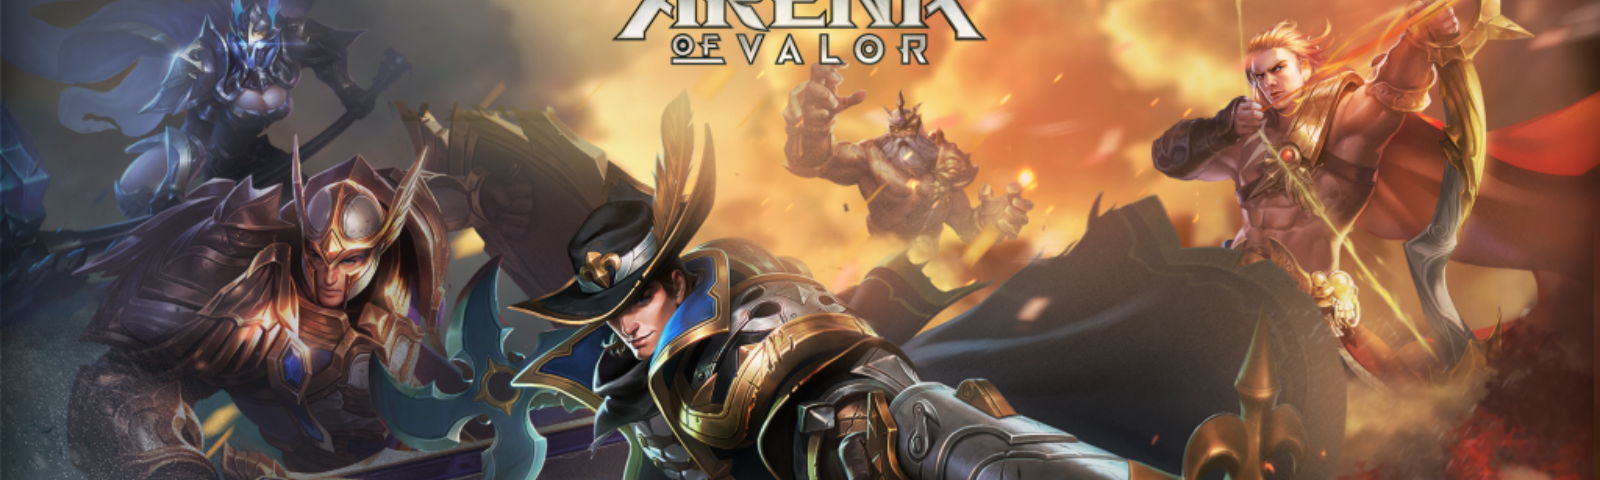 Critical Index Reviews: Arena of Valor - The Critical Index